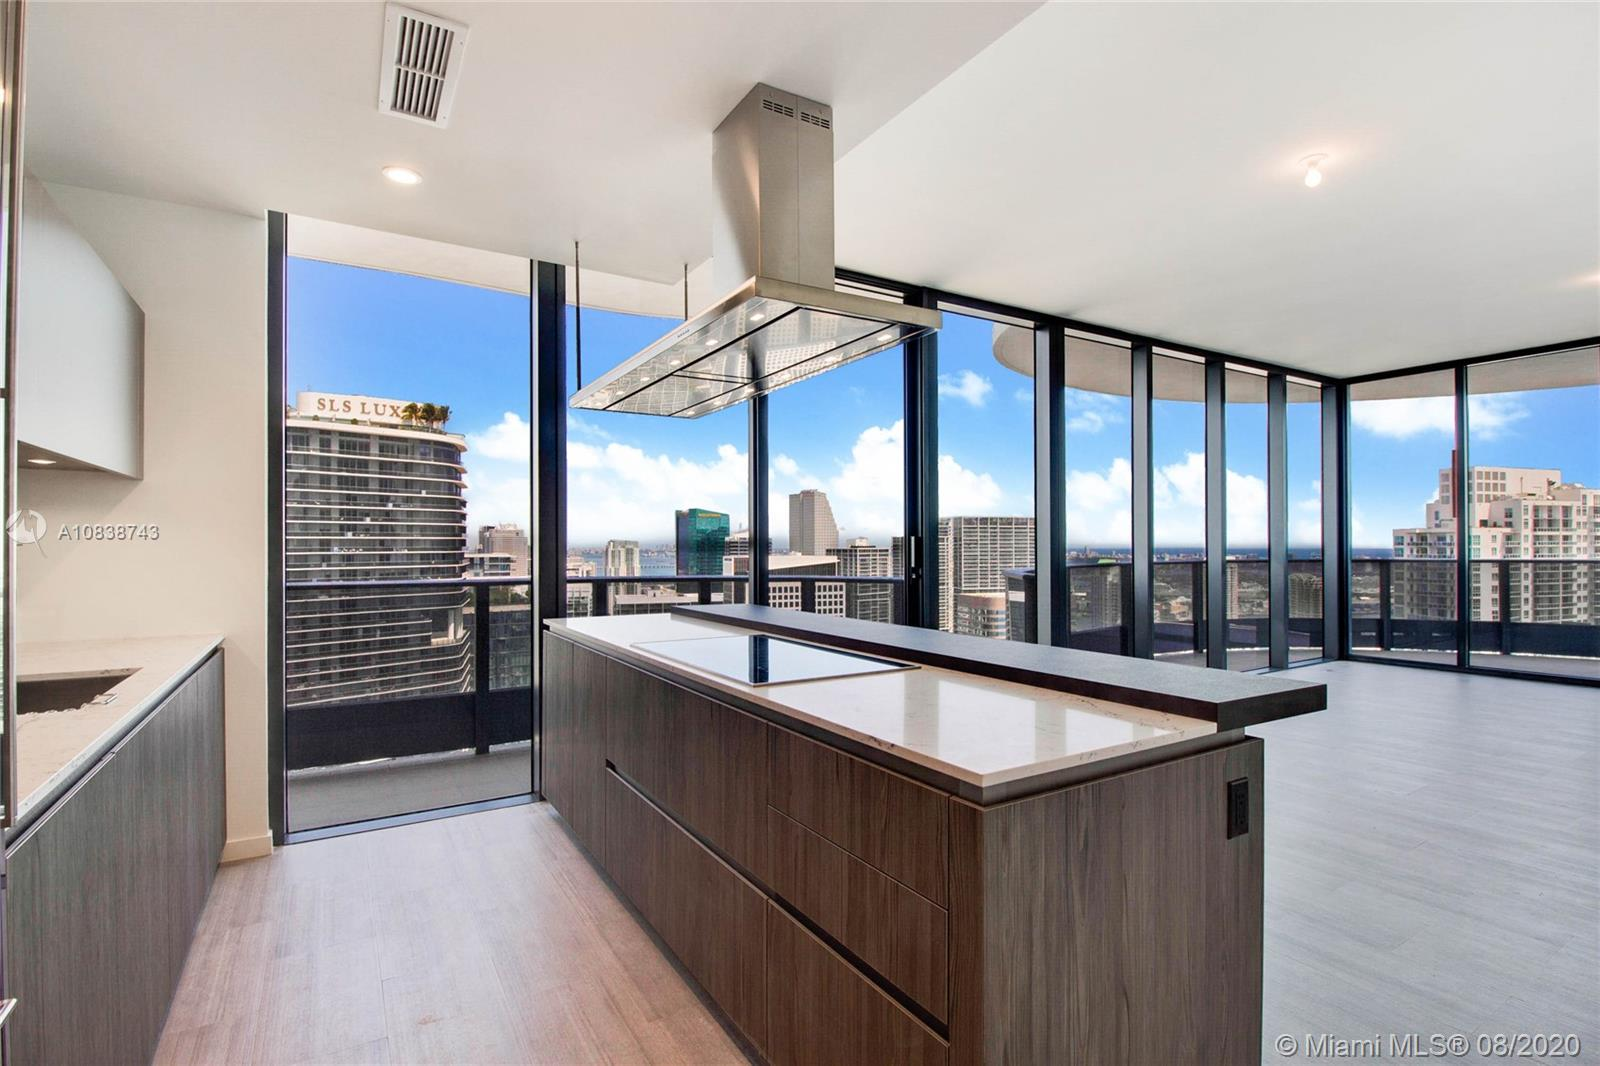 Enjoy outstanding world class views from this 3 bed.3.5 bath unit in Ugo Colombo's CMC Group's newest luxury condo development - Brickell Flatiron Great opportunity to call the beautiful and centrally located 64-story glass tower your home. The penthouse residence features Italian premium porcelain and marble floors, Snaidero kitchen , Miele appliances, floor to ceiling windows, expansive terrace with panoramic views of the Miami skyline. Unparallaled services and resort style amenities including  a rooftop sky deck on the 64th floor, pool, spa, fitness center with pilates/yoga and aerobics studio, private steam and sauna rooms, children's play area, game room, movie theatre and recreation rooms.